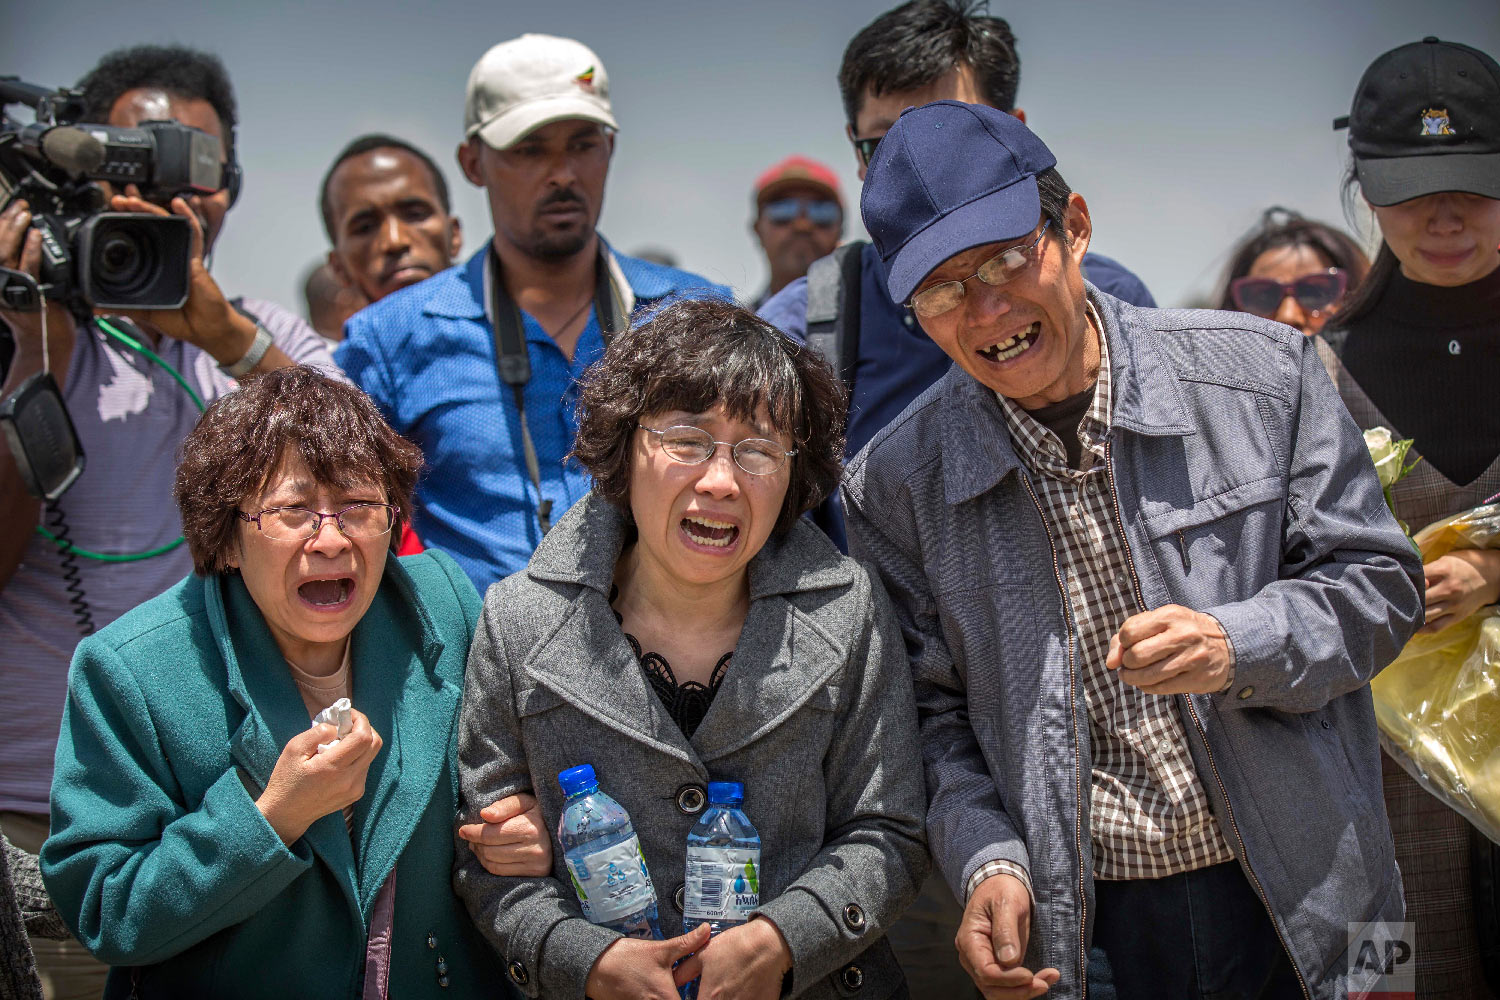 Family members cry at the scene where the Ethiopian Airlines Boeing 737 Max 8 crashed shortly after takeoff on Sunday near Bishoftu, Ethiopia, March 13, 2019. (AP Photo/Mulugeta Ayene)